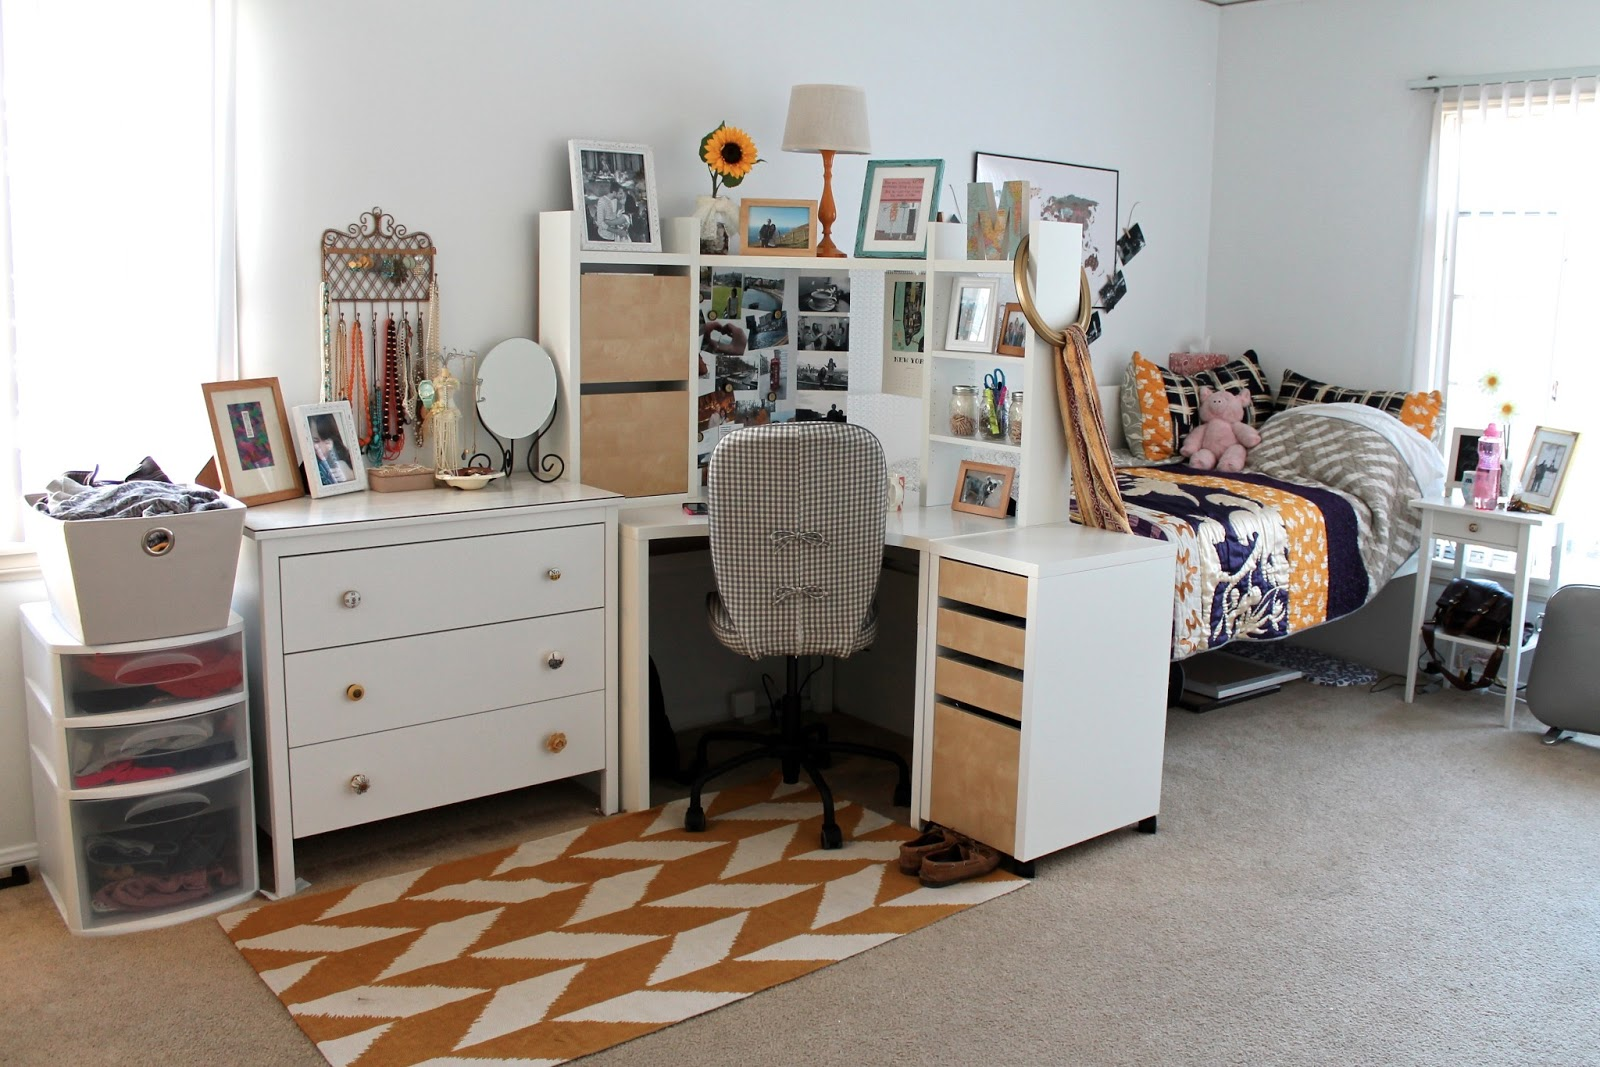 diy-ideas-for-college-apartment